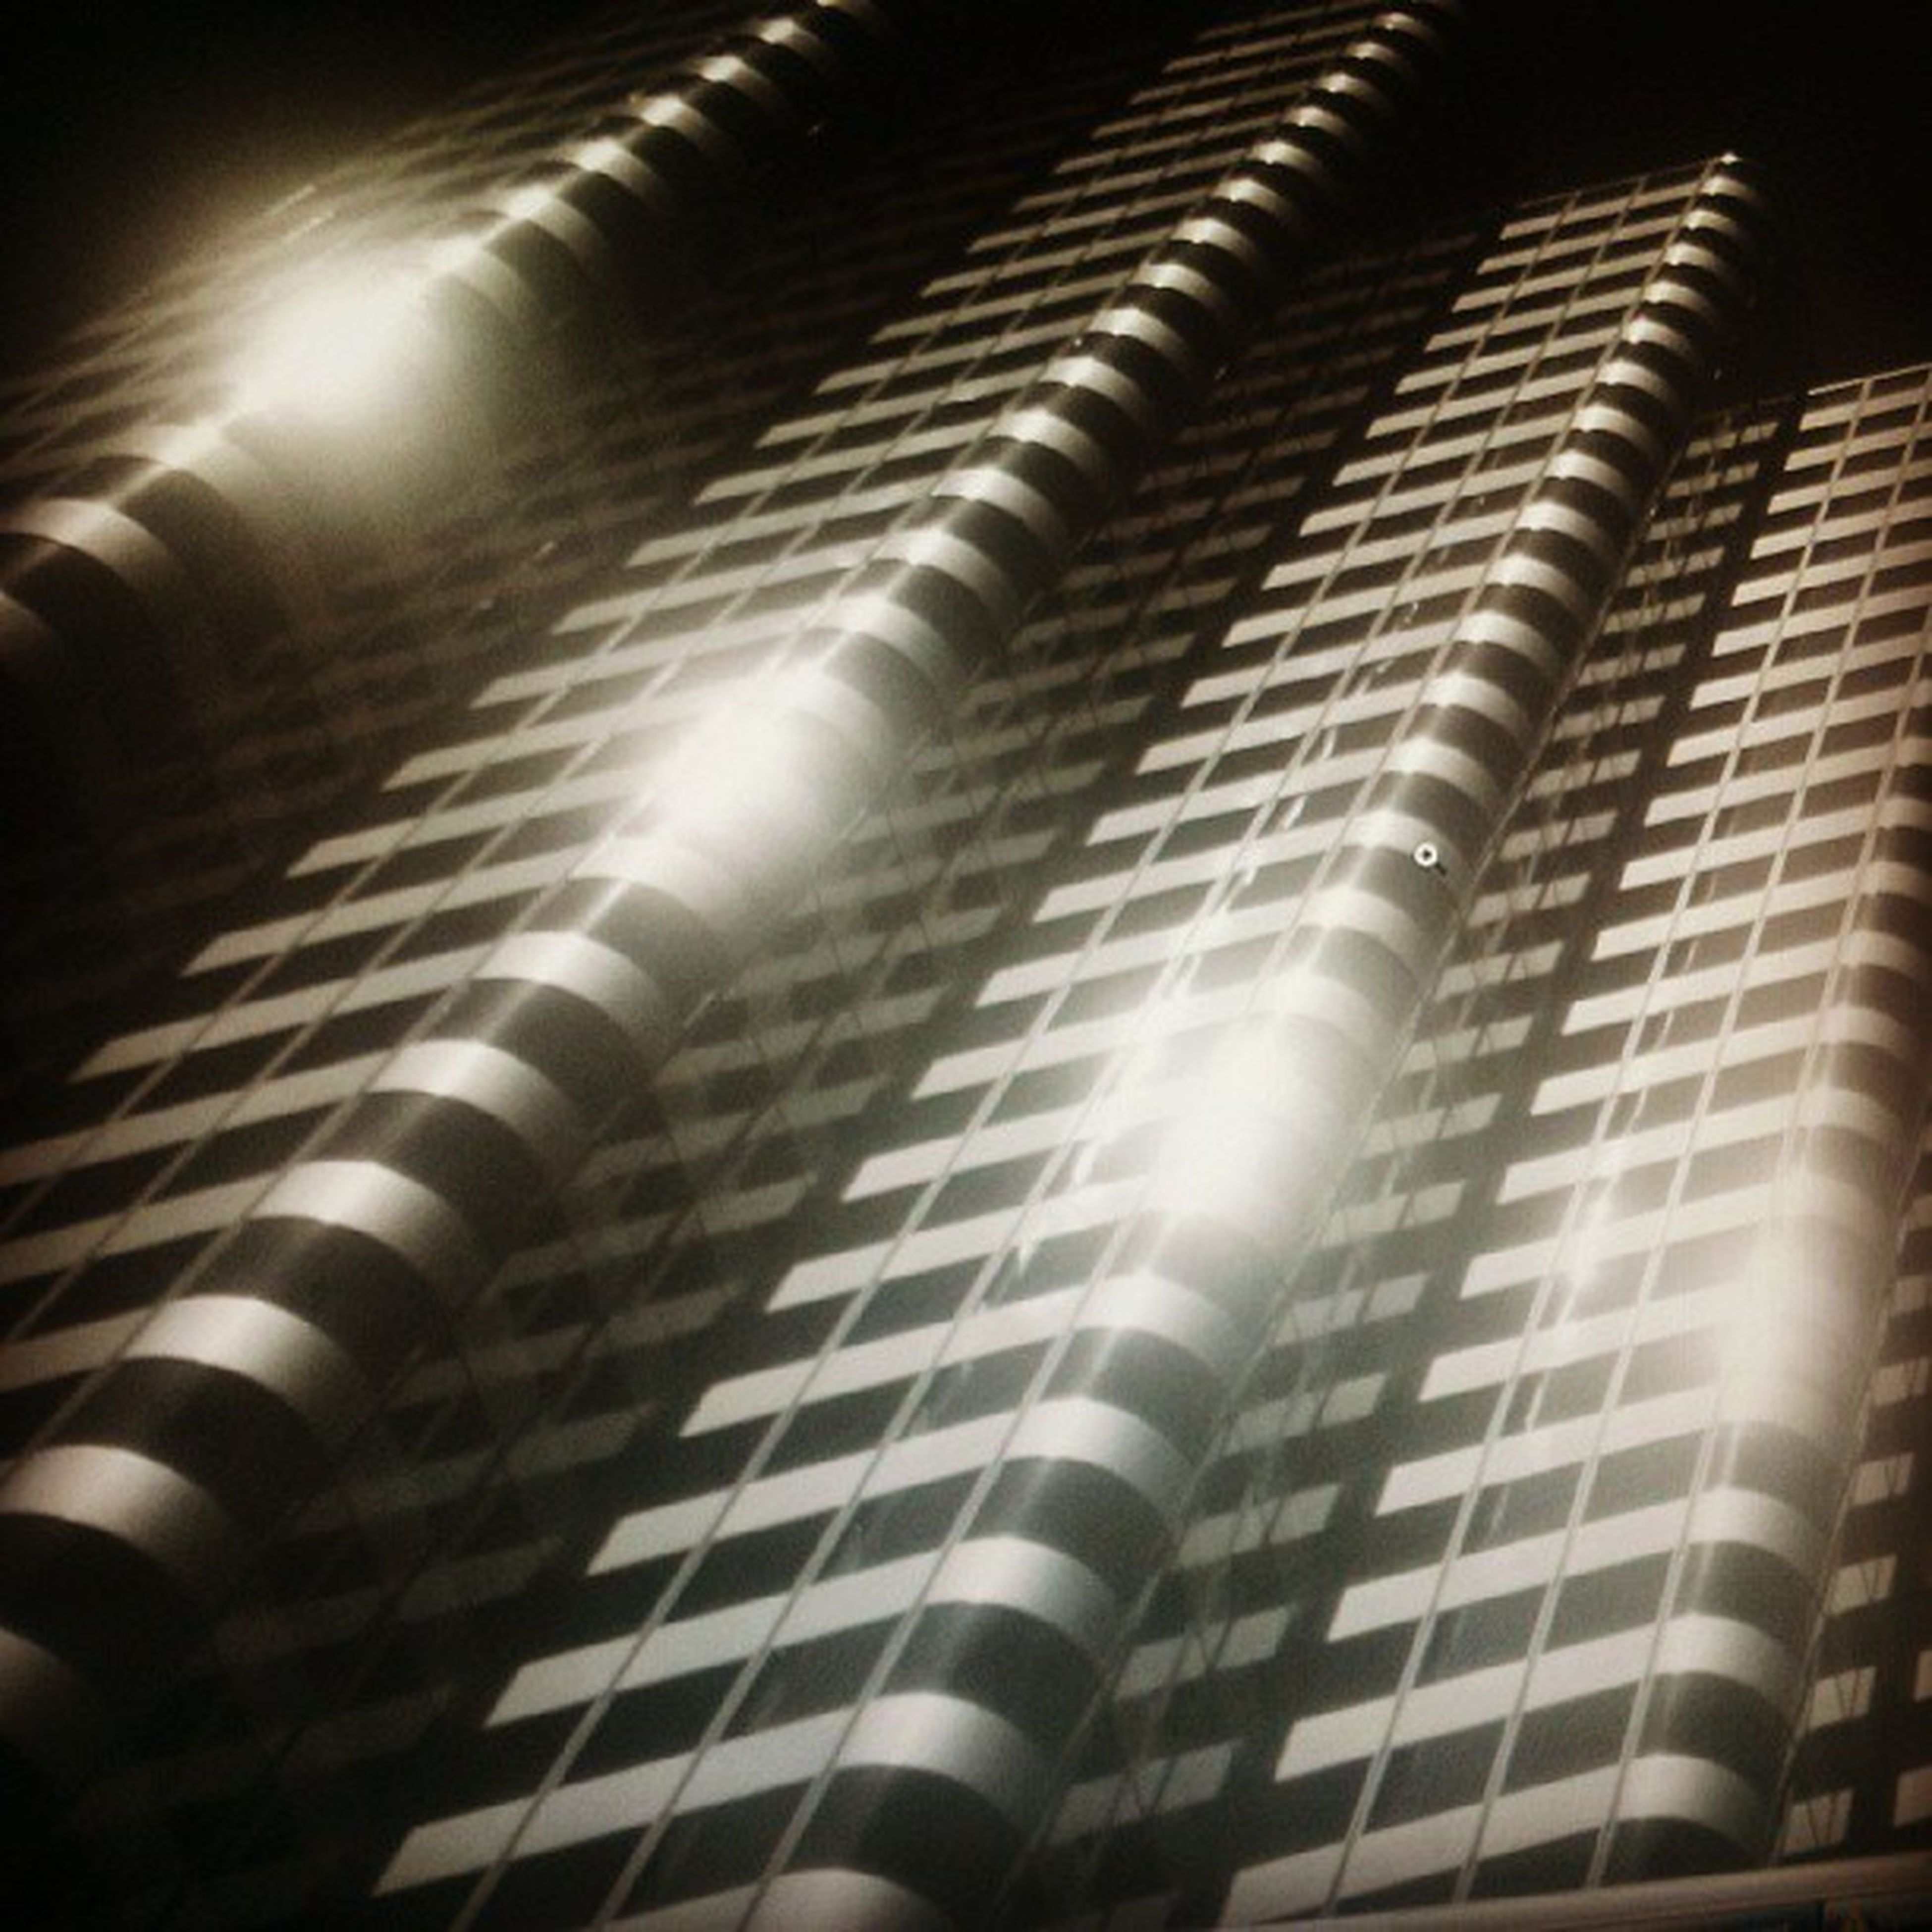 architecture, built structure, indoors, low angle view, pattern, repetition, building exterior, illuminated, night, metal, in a row, modern, architectural feature, building, no people, metallic, factory, industry, design, close-up